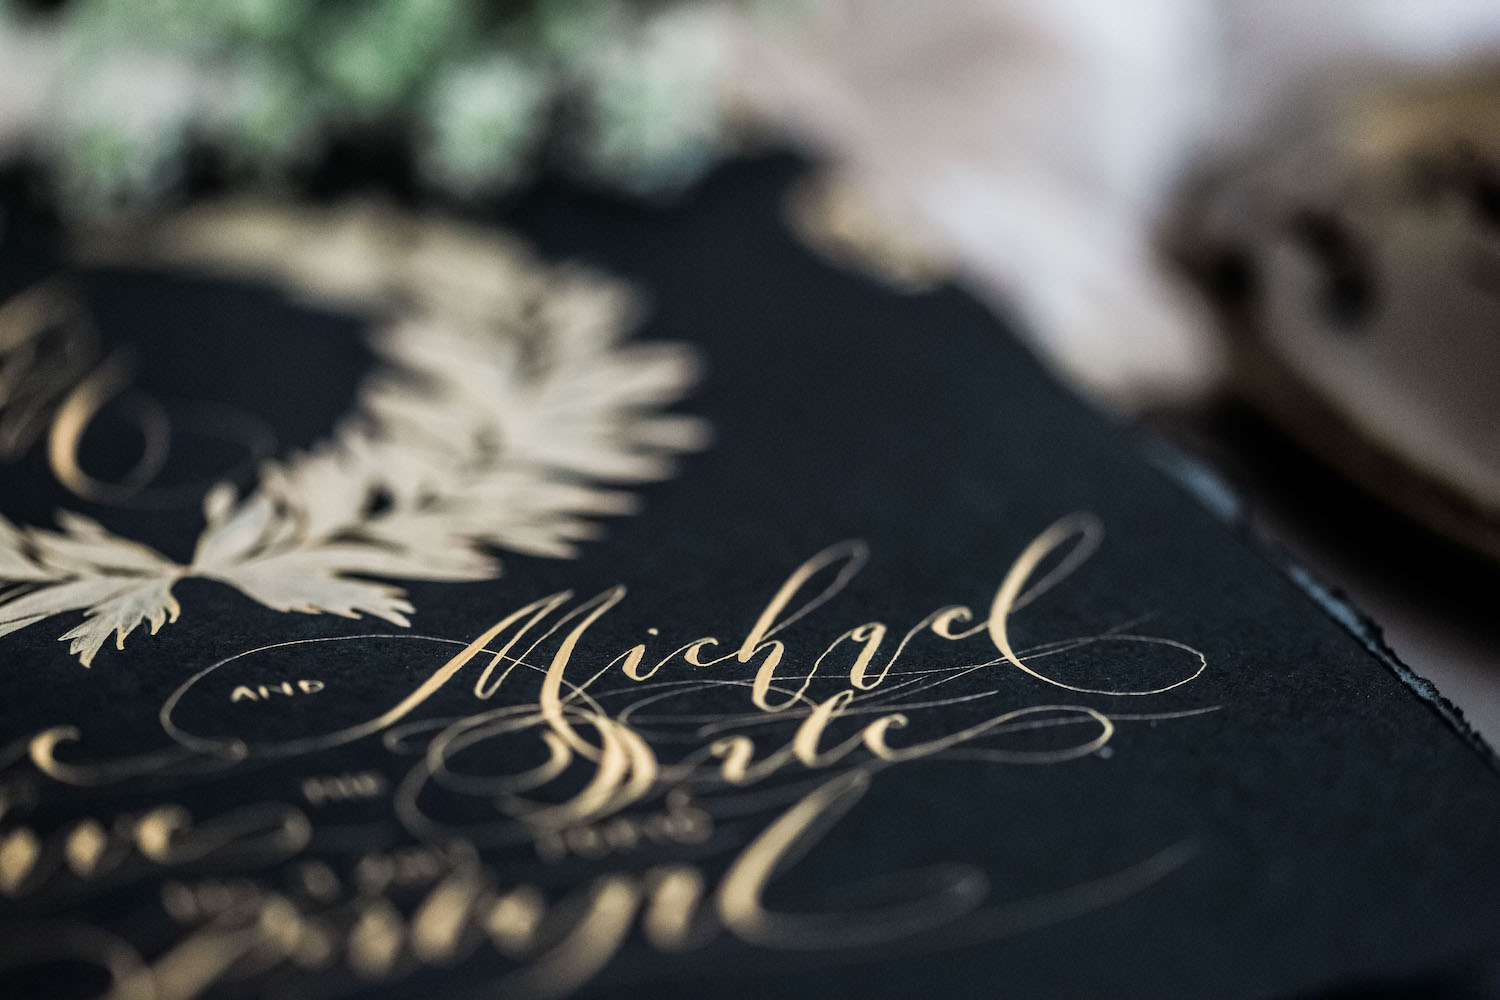 Black Tie Wedding Invitations with gold foil